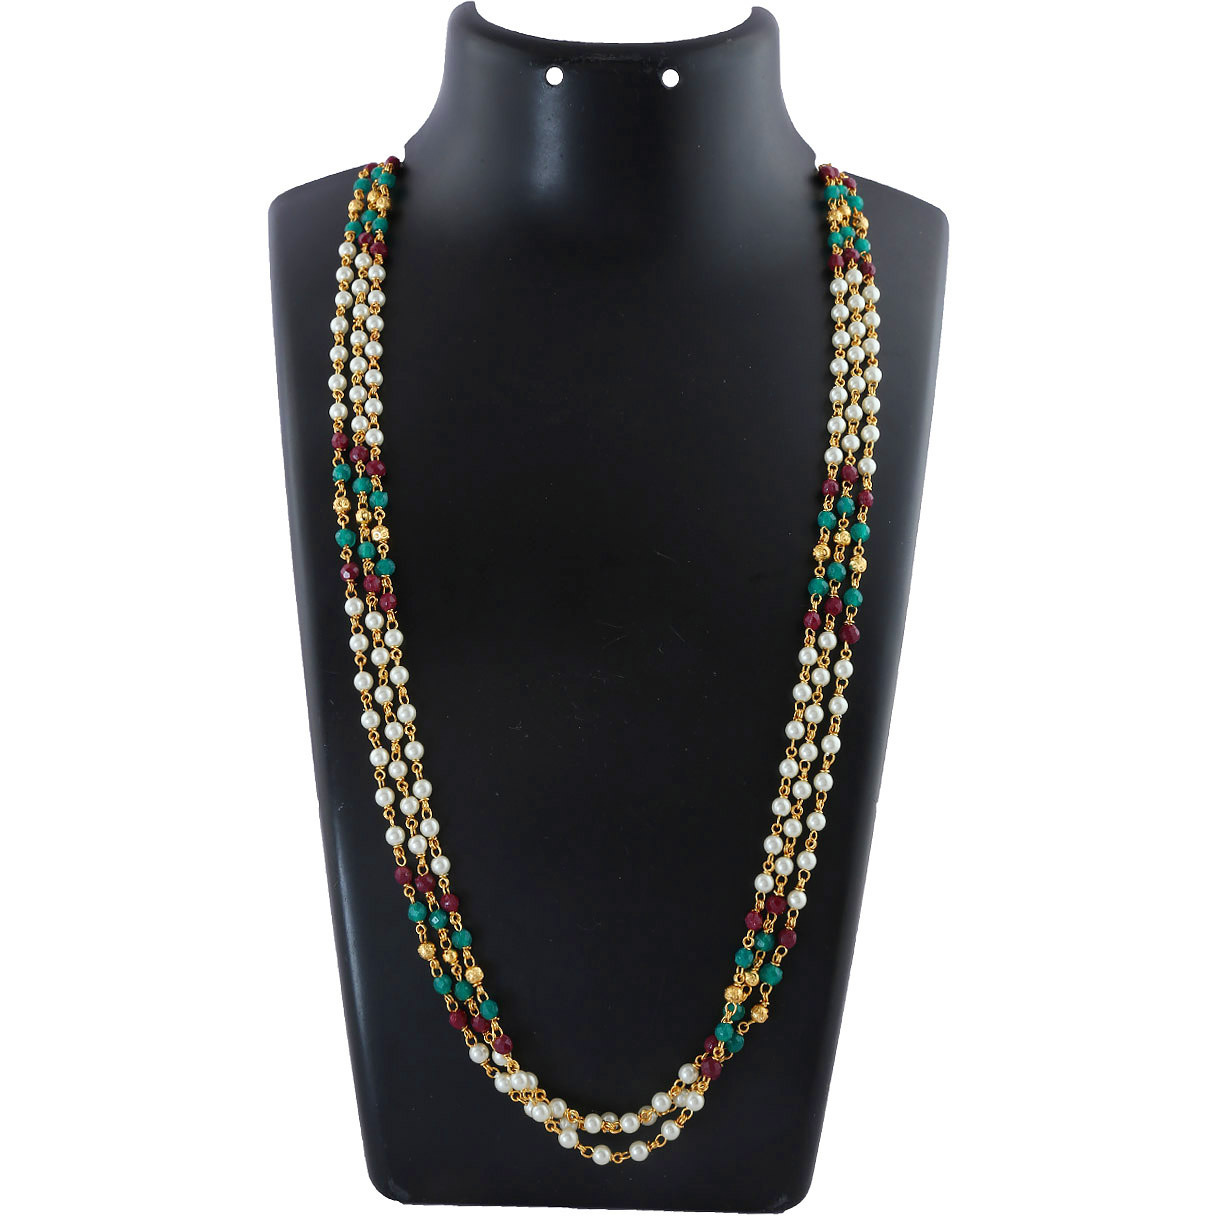 Anuradha Art Maroon-Green Colour Styled With Classy Beads Adorable Traditional Long Necklace Moti Mala For Women/Girls